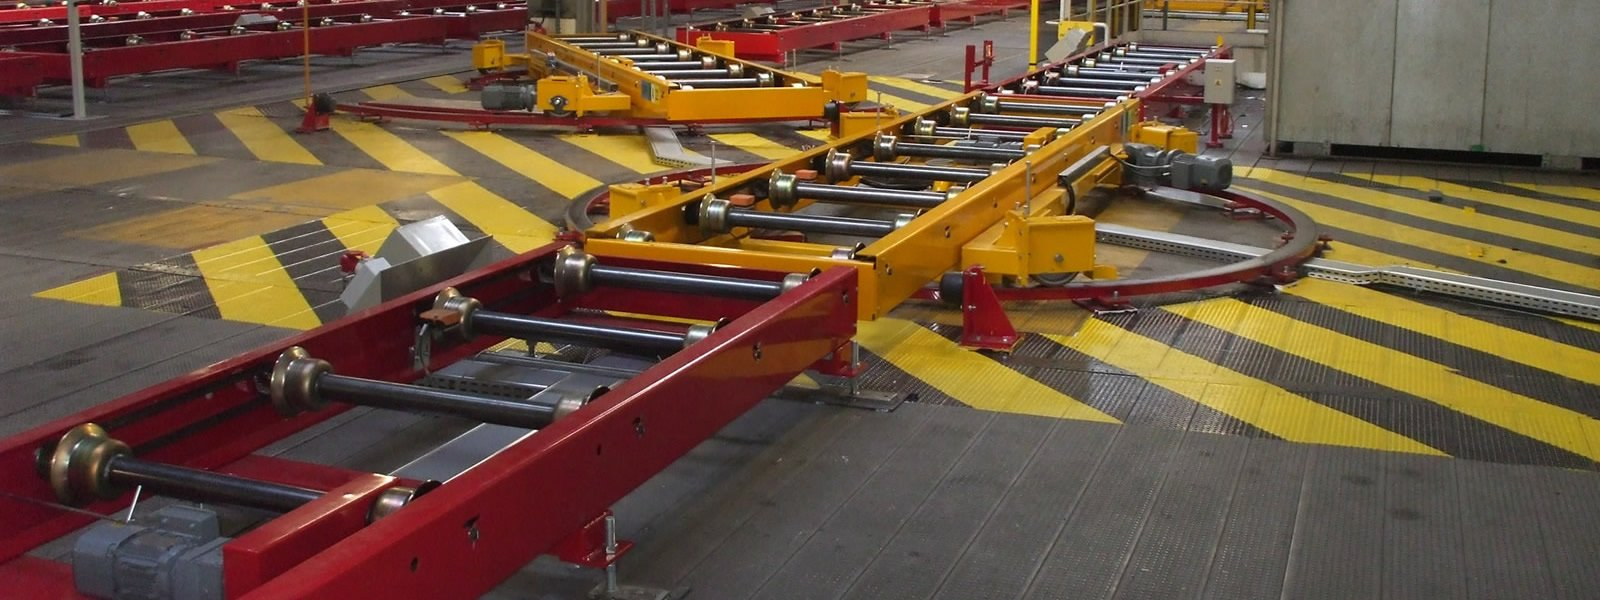 Skid conveyor installation in a automotive paint shop at Renault Sandouville with power roller beds (PRB) ATS Group, Appalette Tourtellier Systèmes, ATS Conveyors India, HERO Fördertechnik